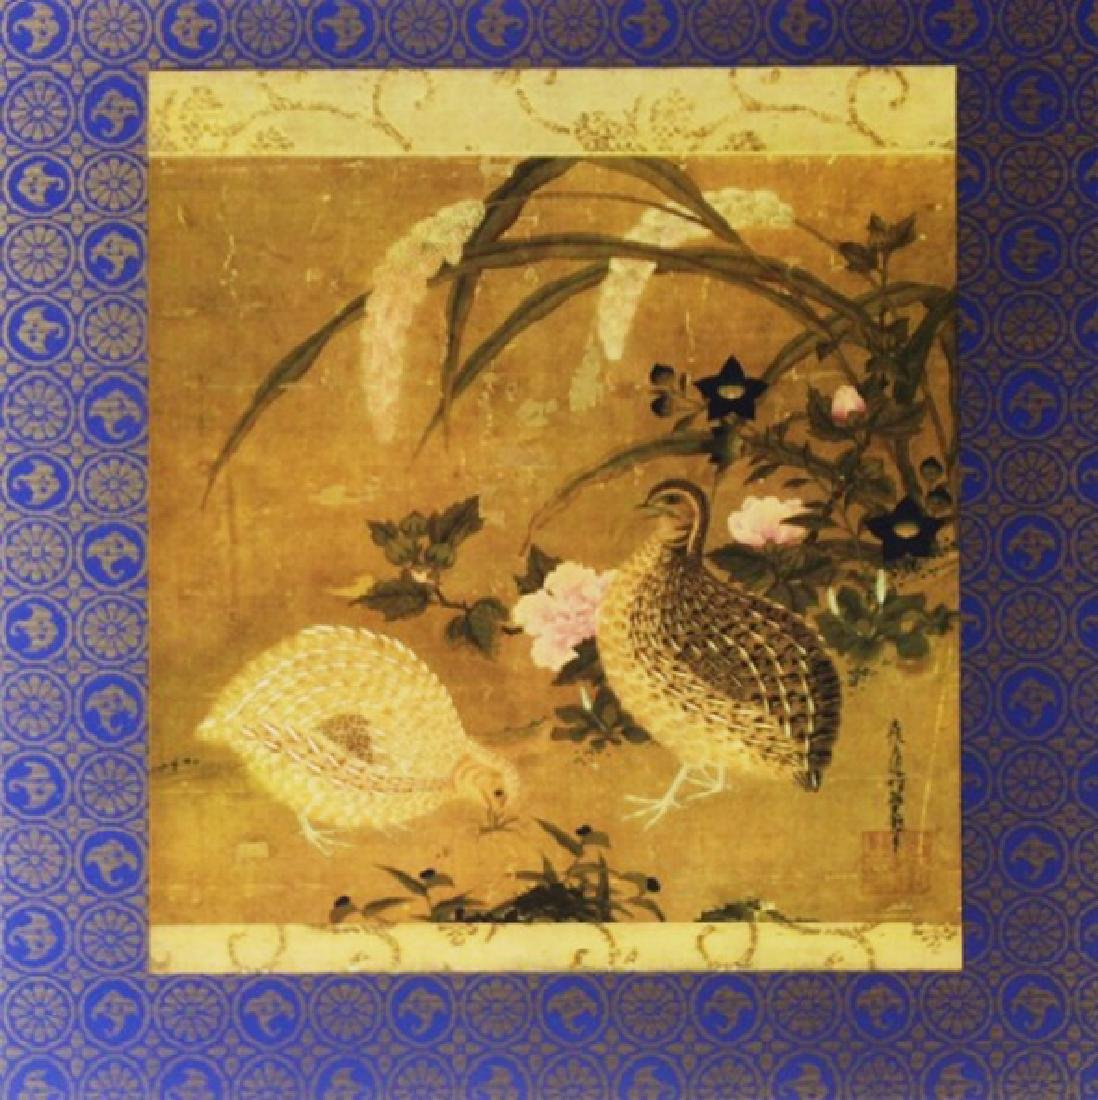 Signed Lithograph Tosa Mitsuoki - Quails & Flowers